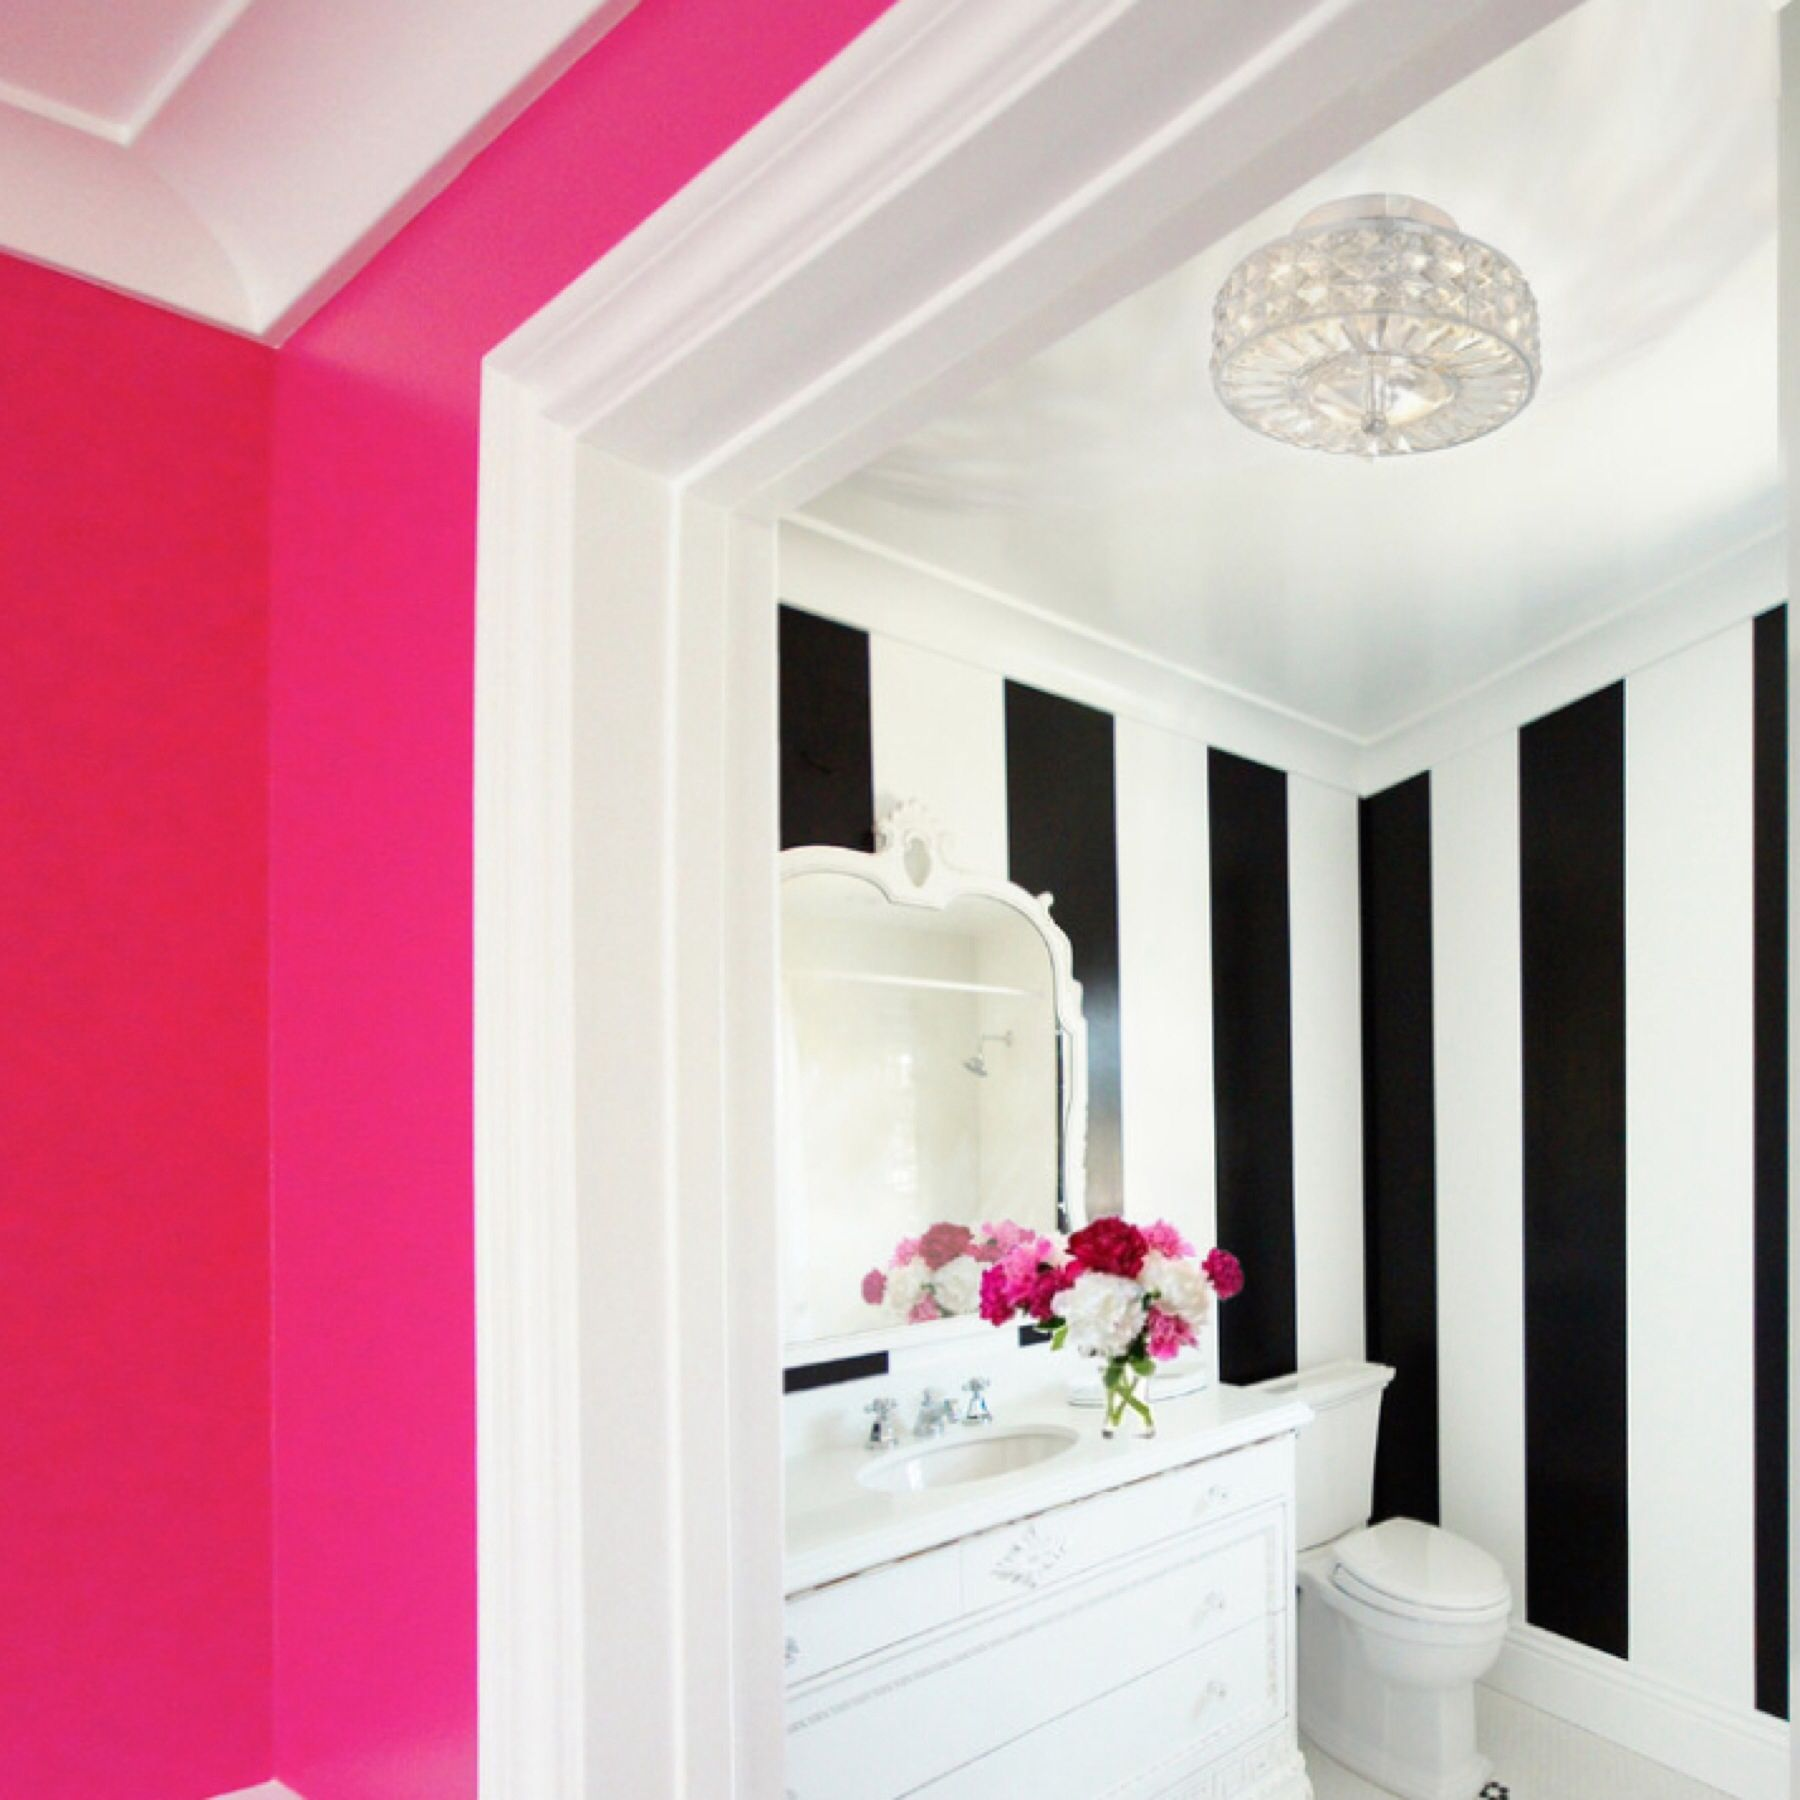 Pretty in Pink | Bathroom | Pinterest | Room ideas, Room and Wall papers